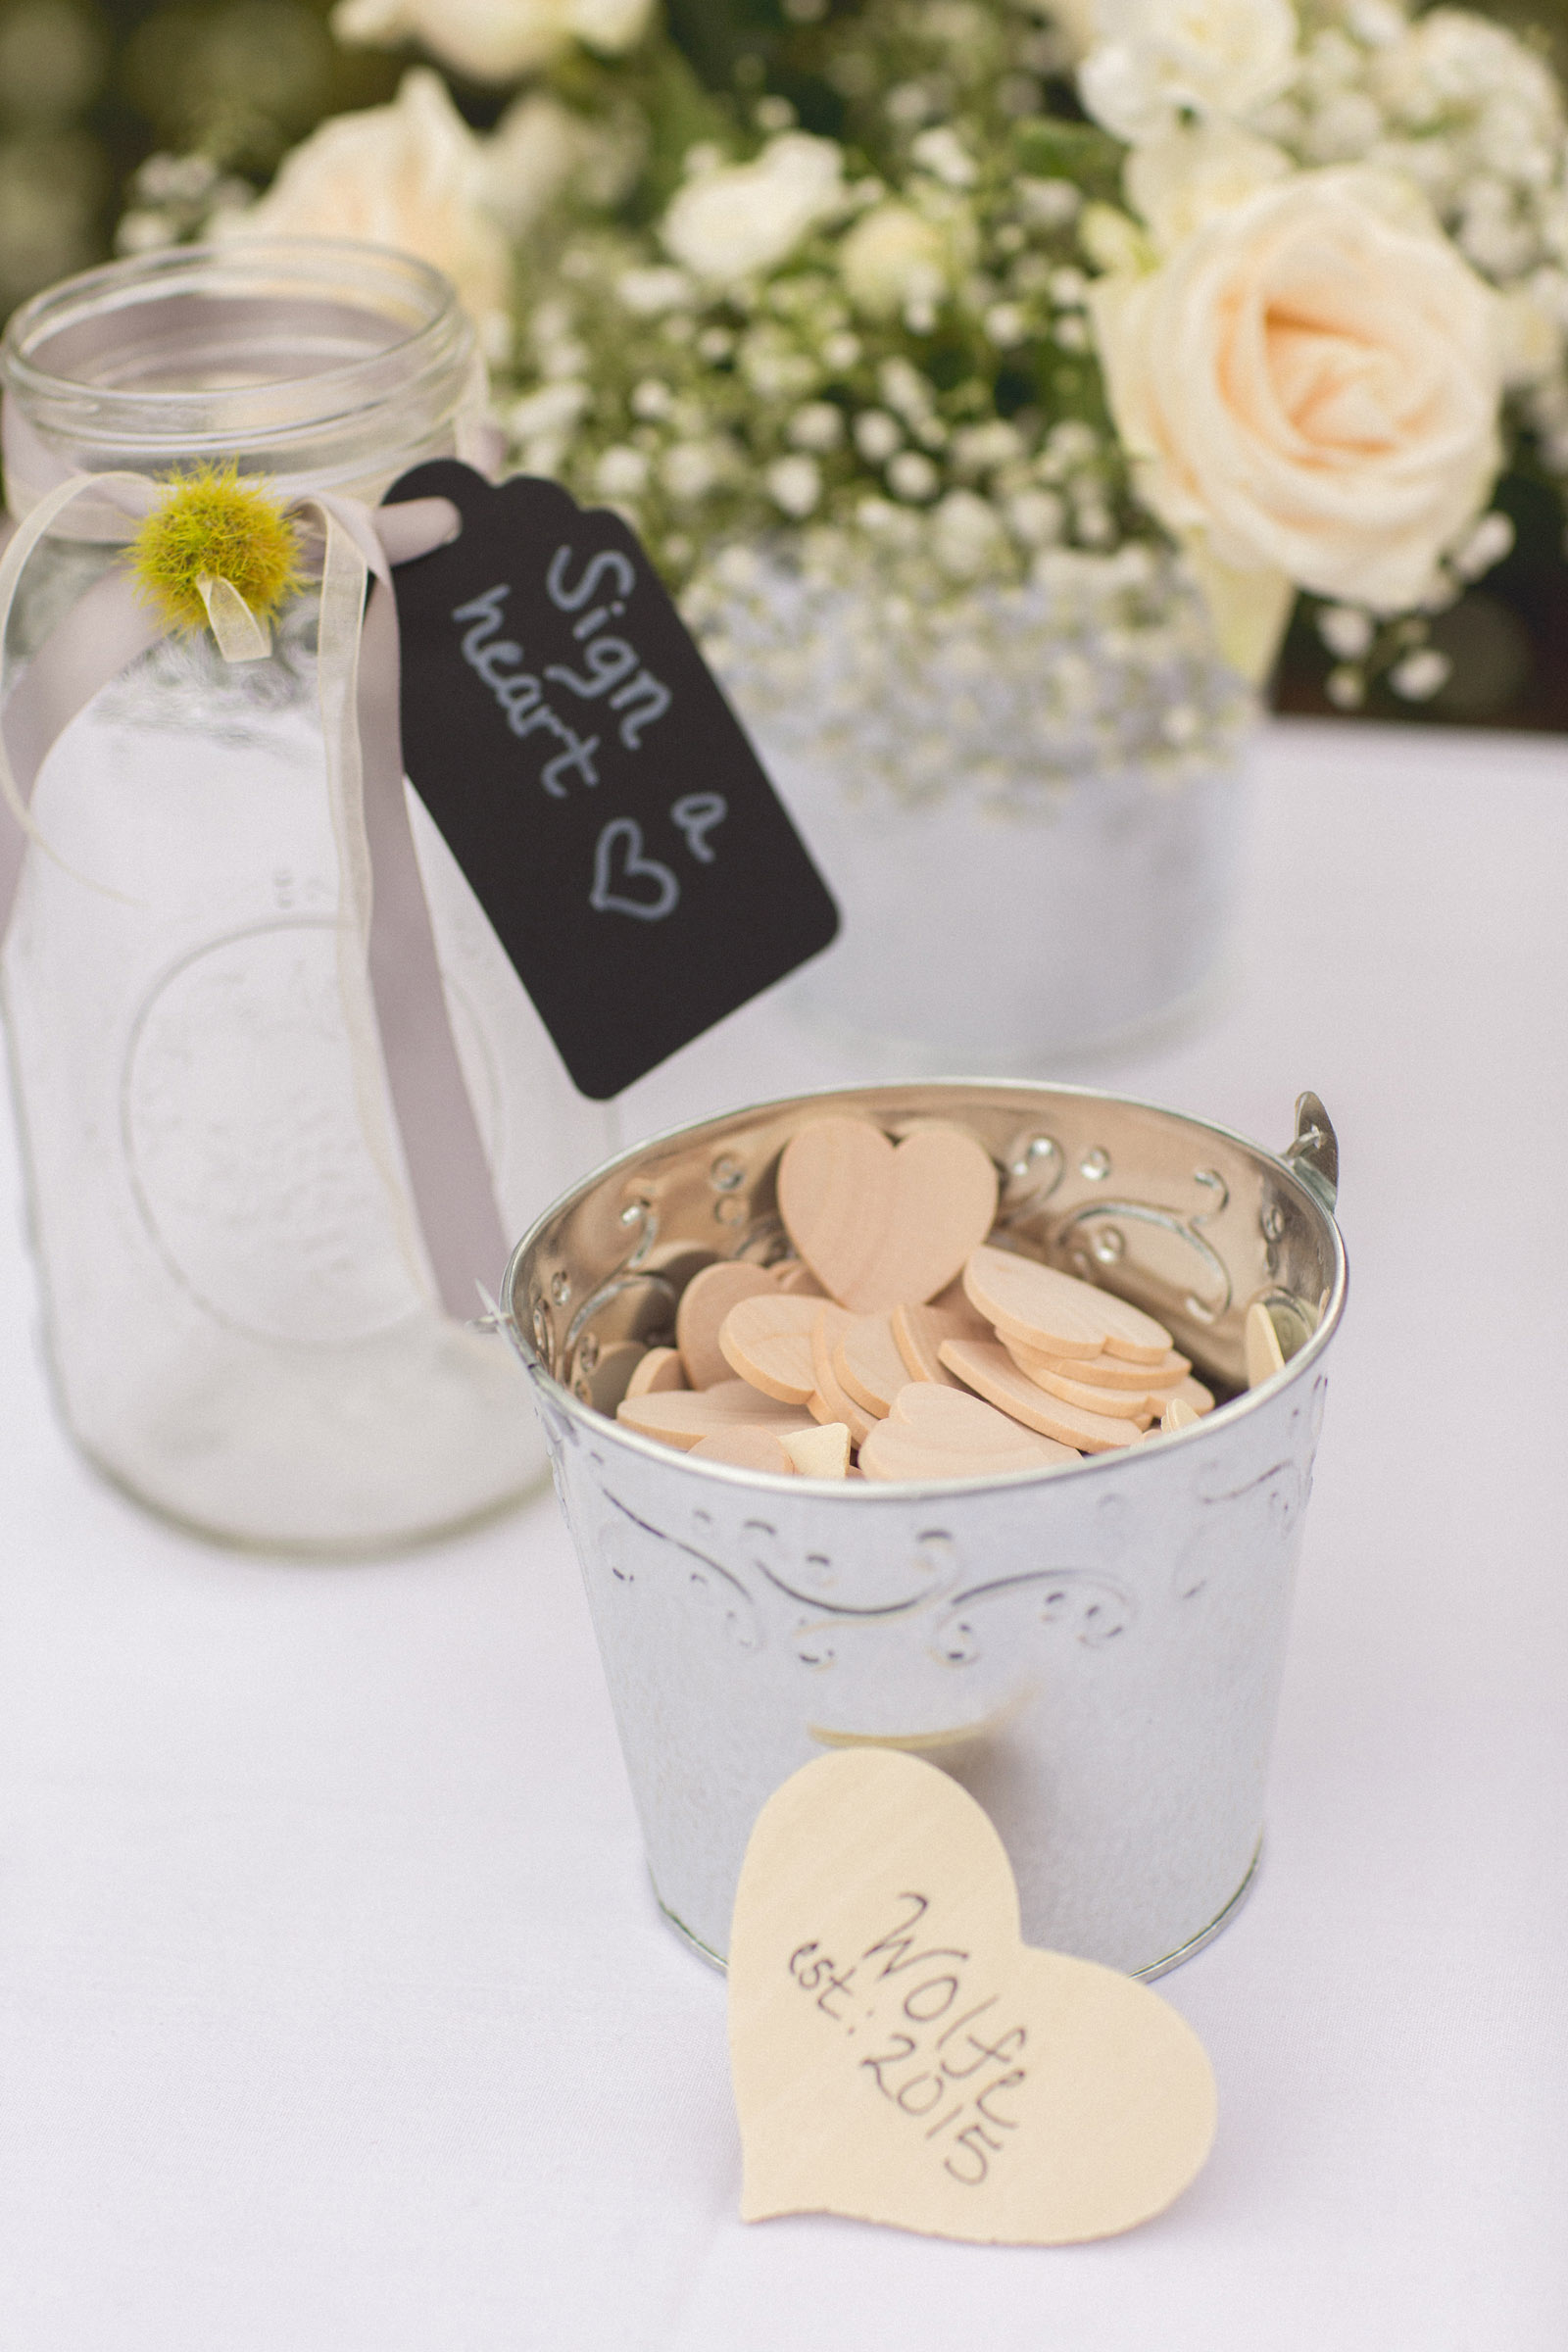 102-wedding-ideas-ideas-wedding-forest-mason-jars-backdrop-colorado-mancos-ceremony